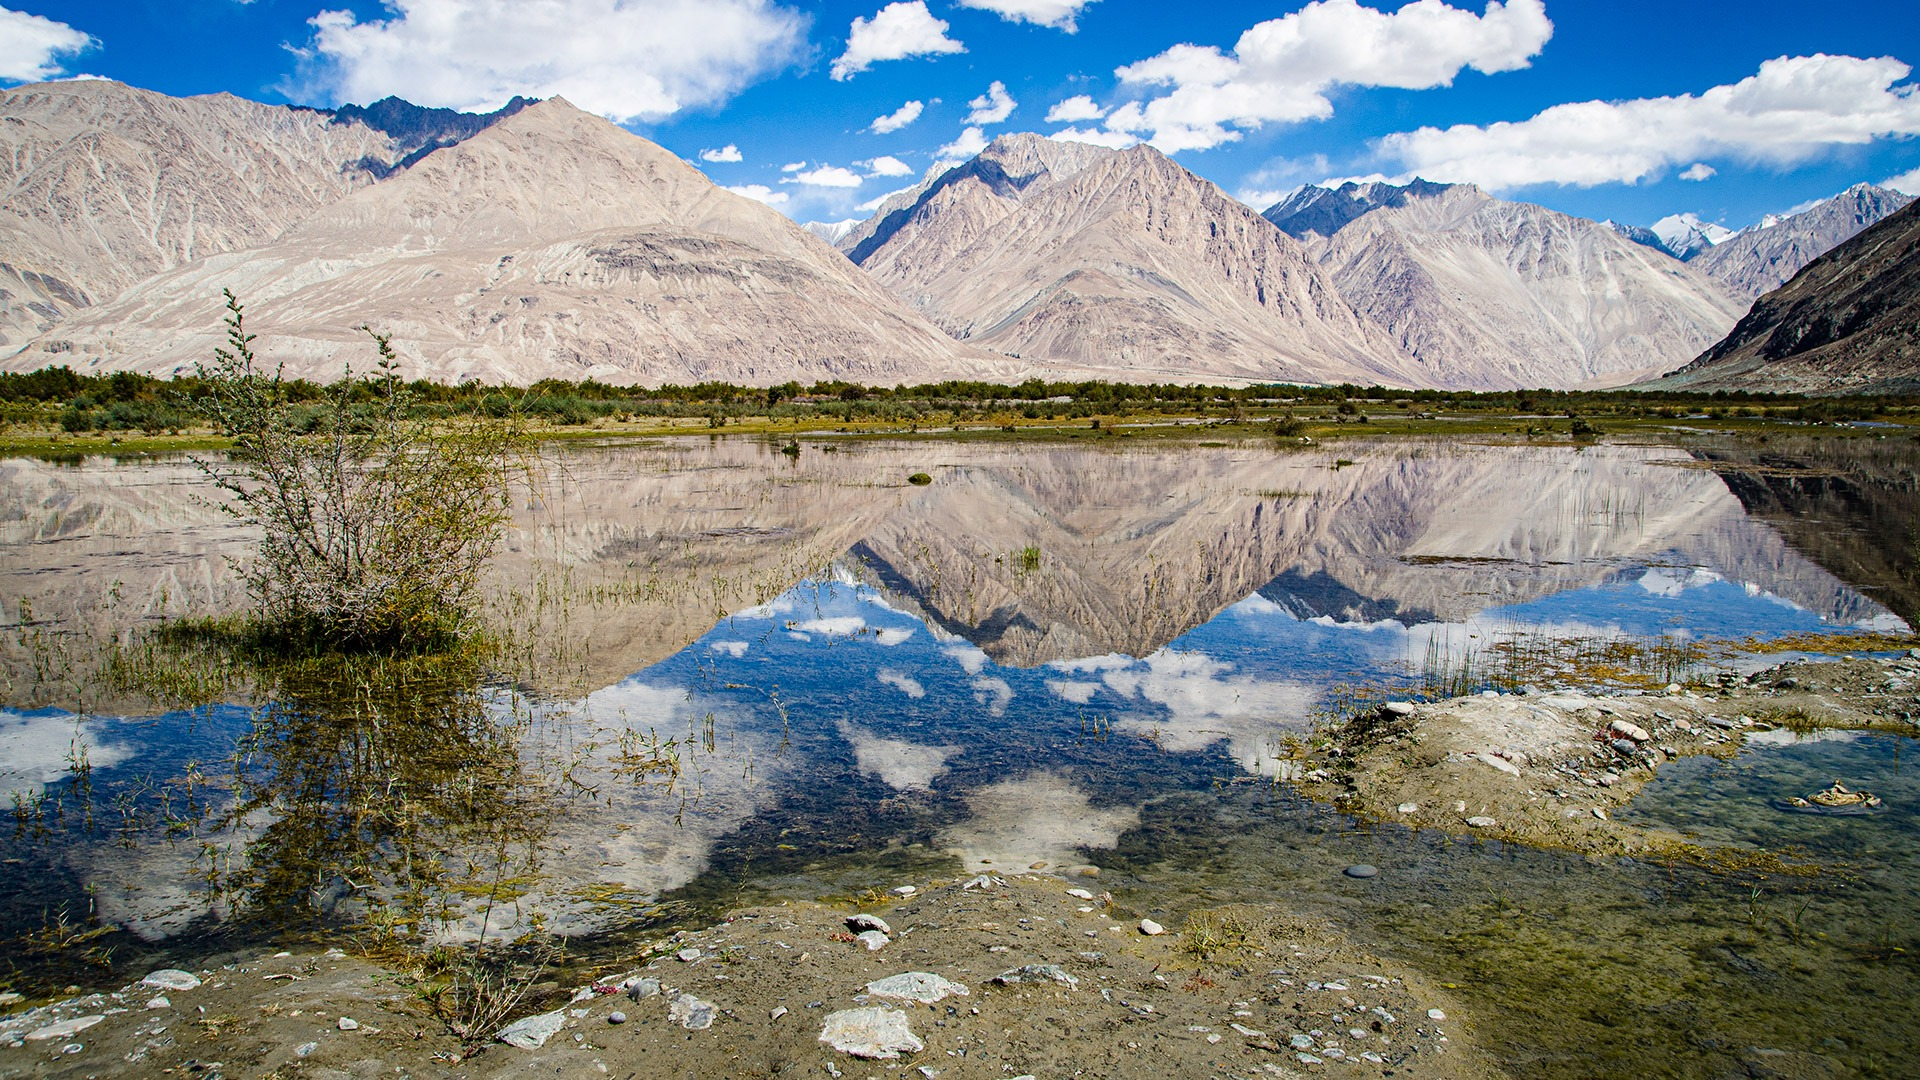 Dramatic landscapes in the Nubra Valley, Ladakh, India